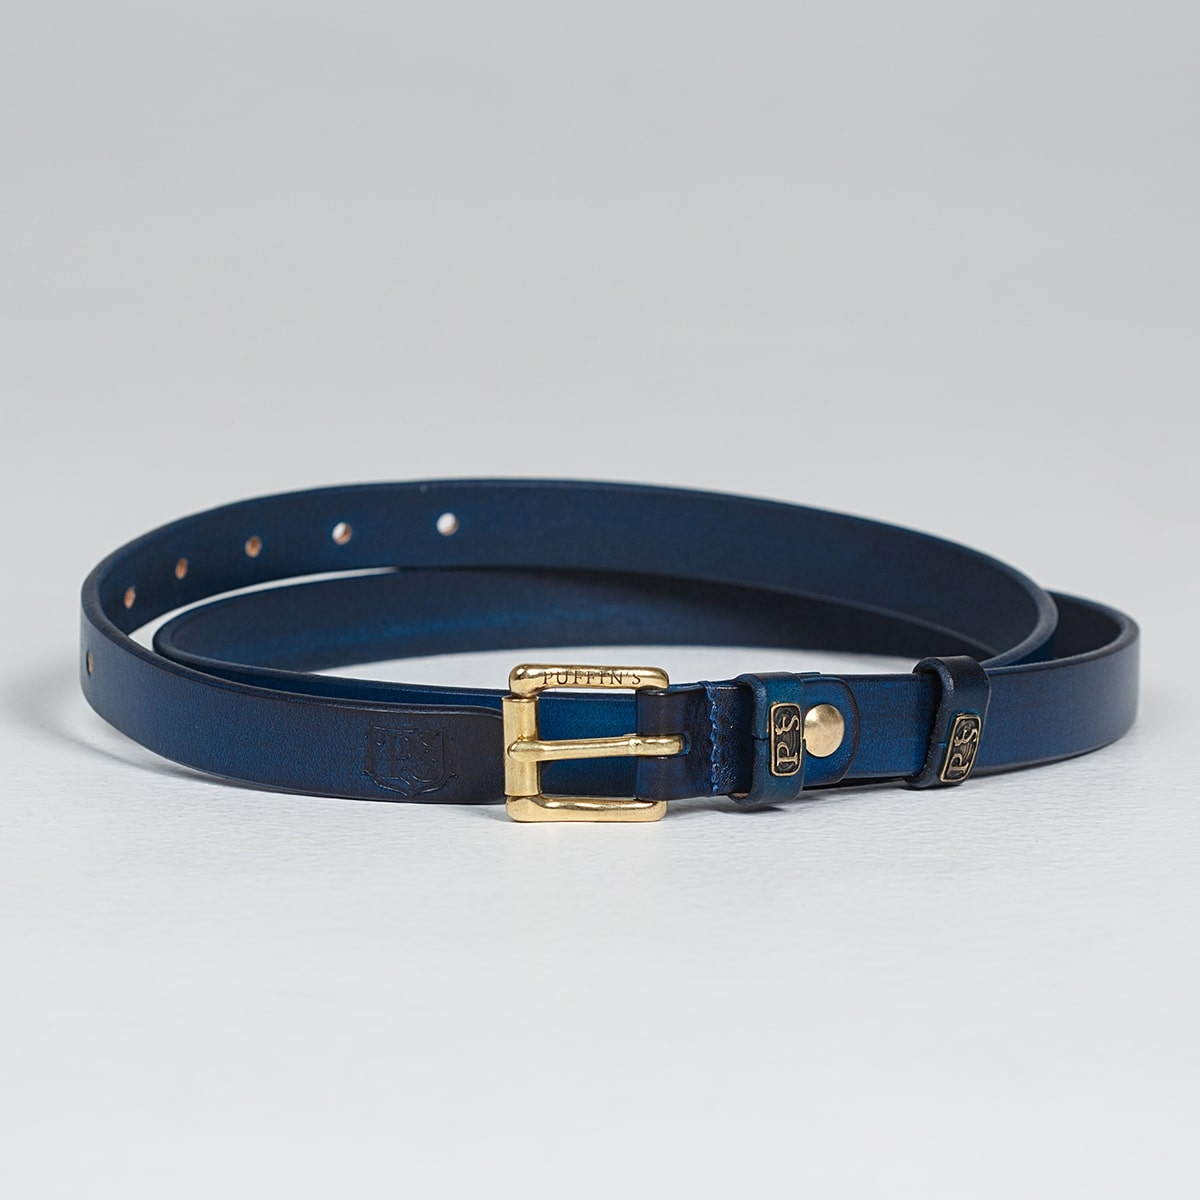 An exquisite 20mm belt with a brass buckle sapphire blue